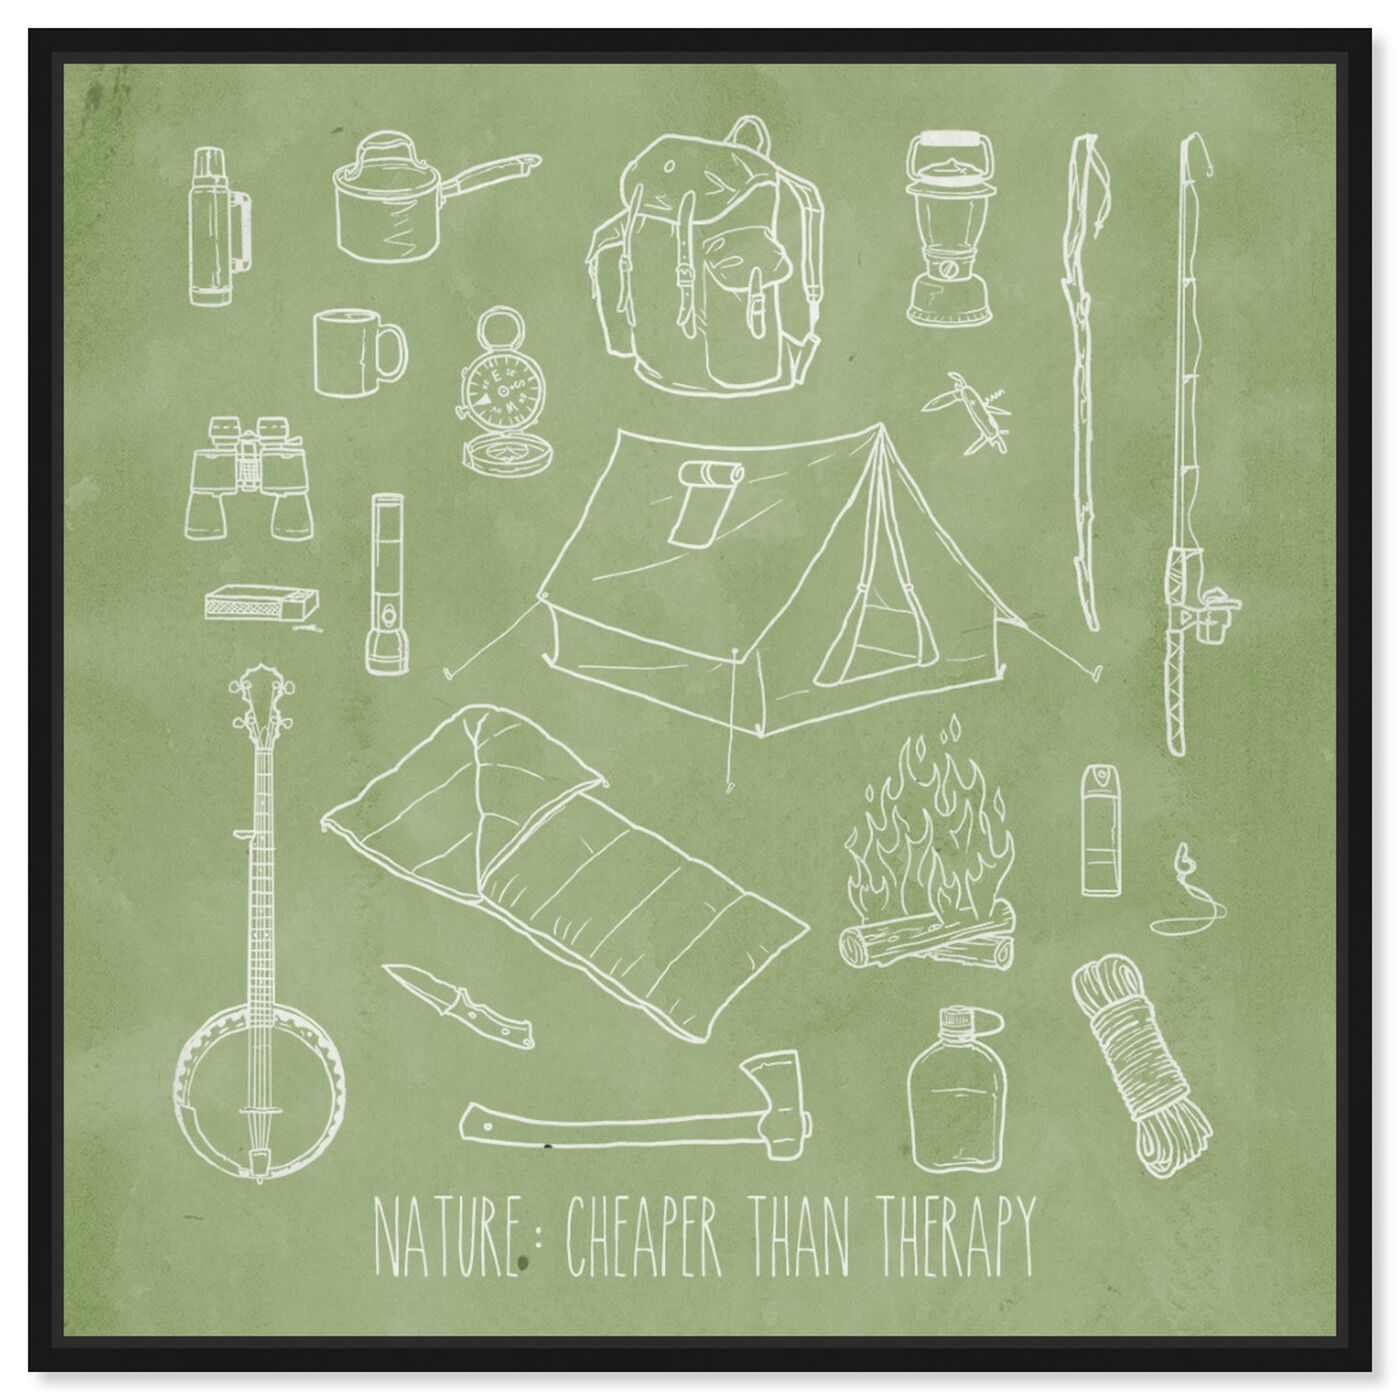 Front view of Cheaper than Therapy featuring entertainment and hobbies and camping art.